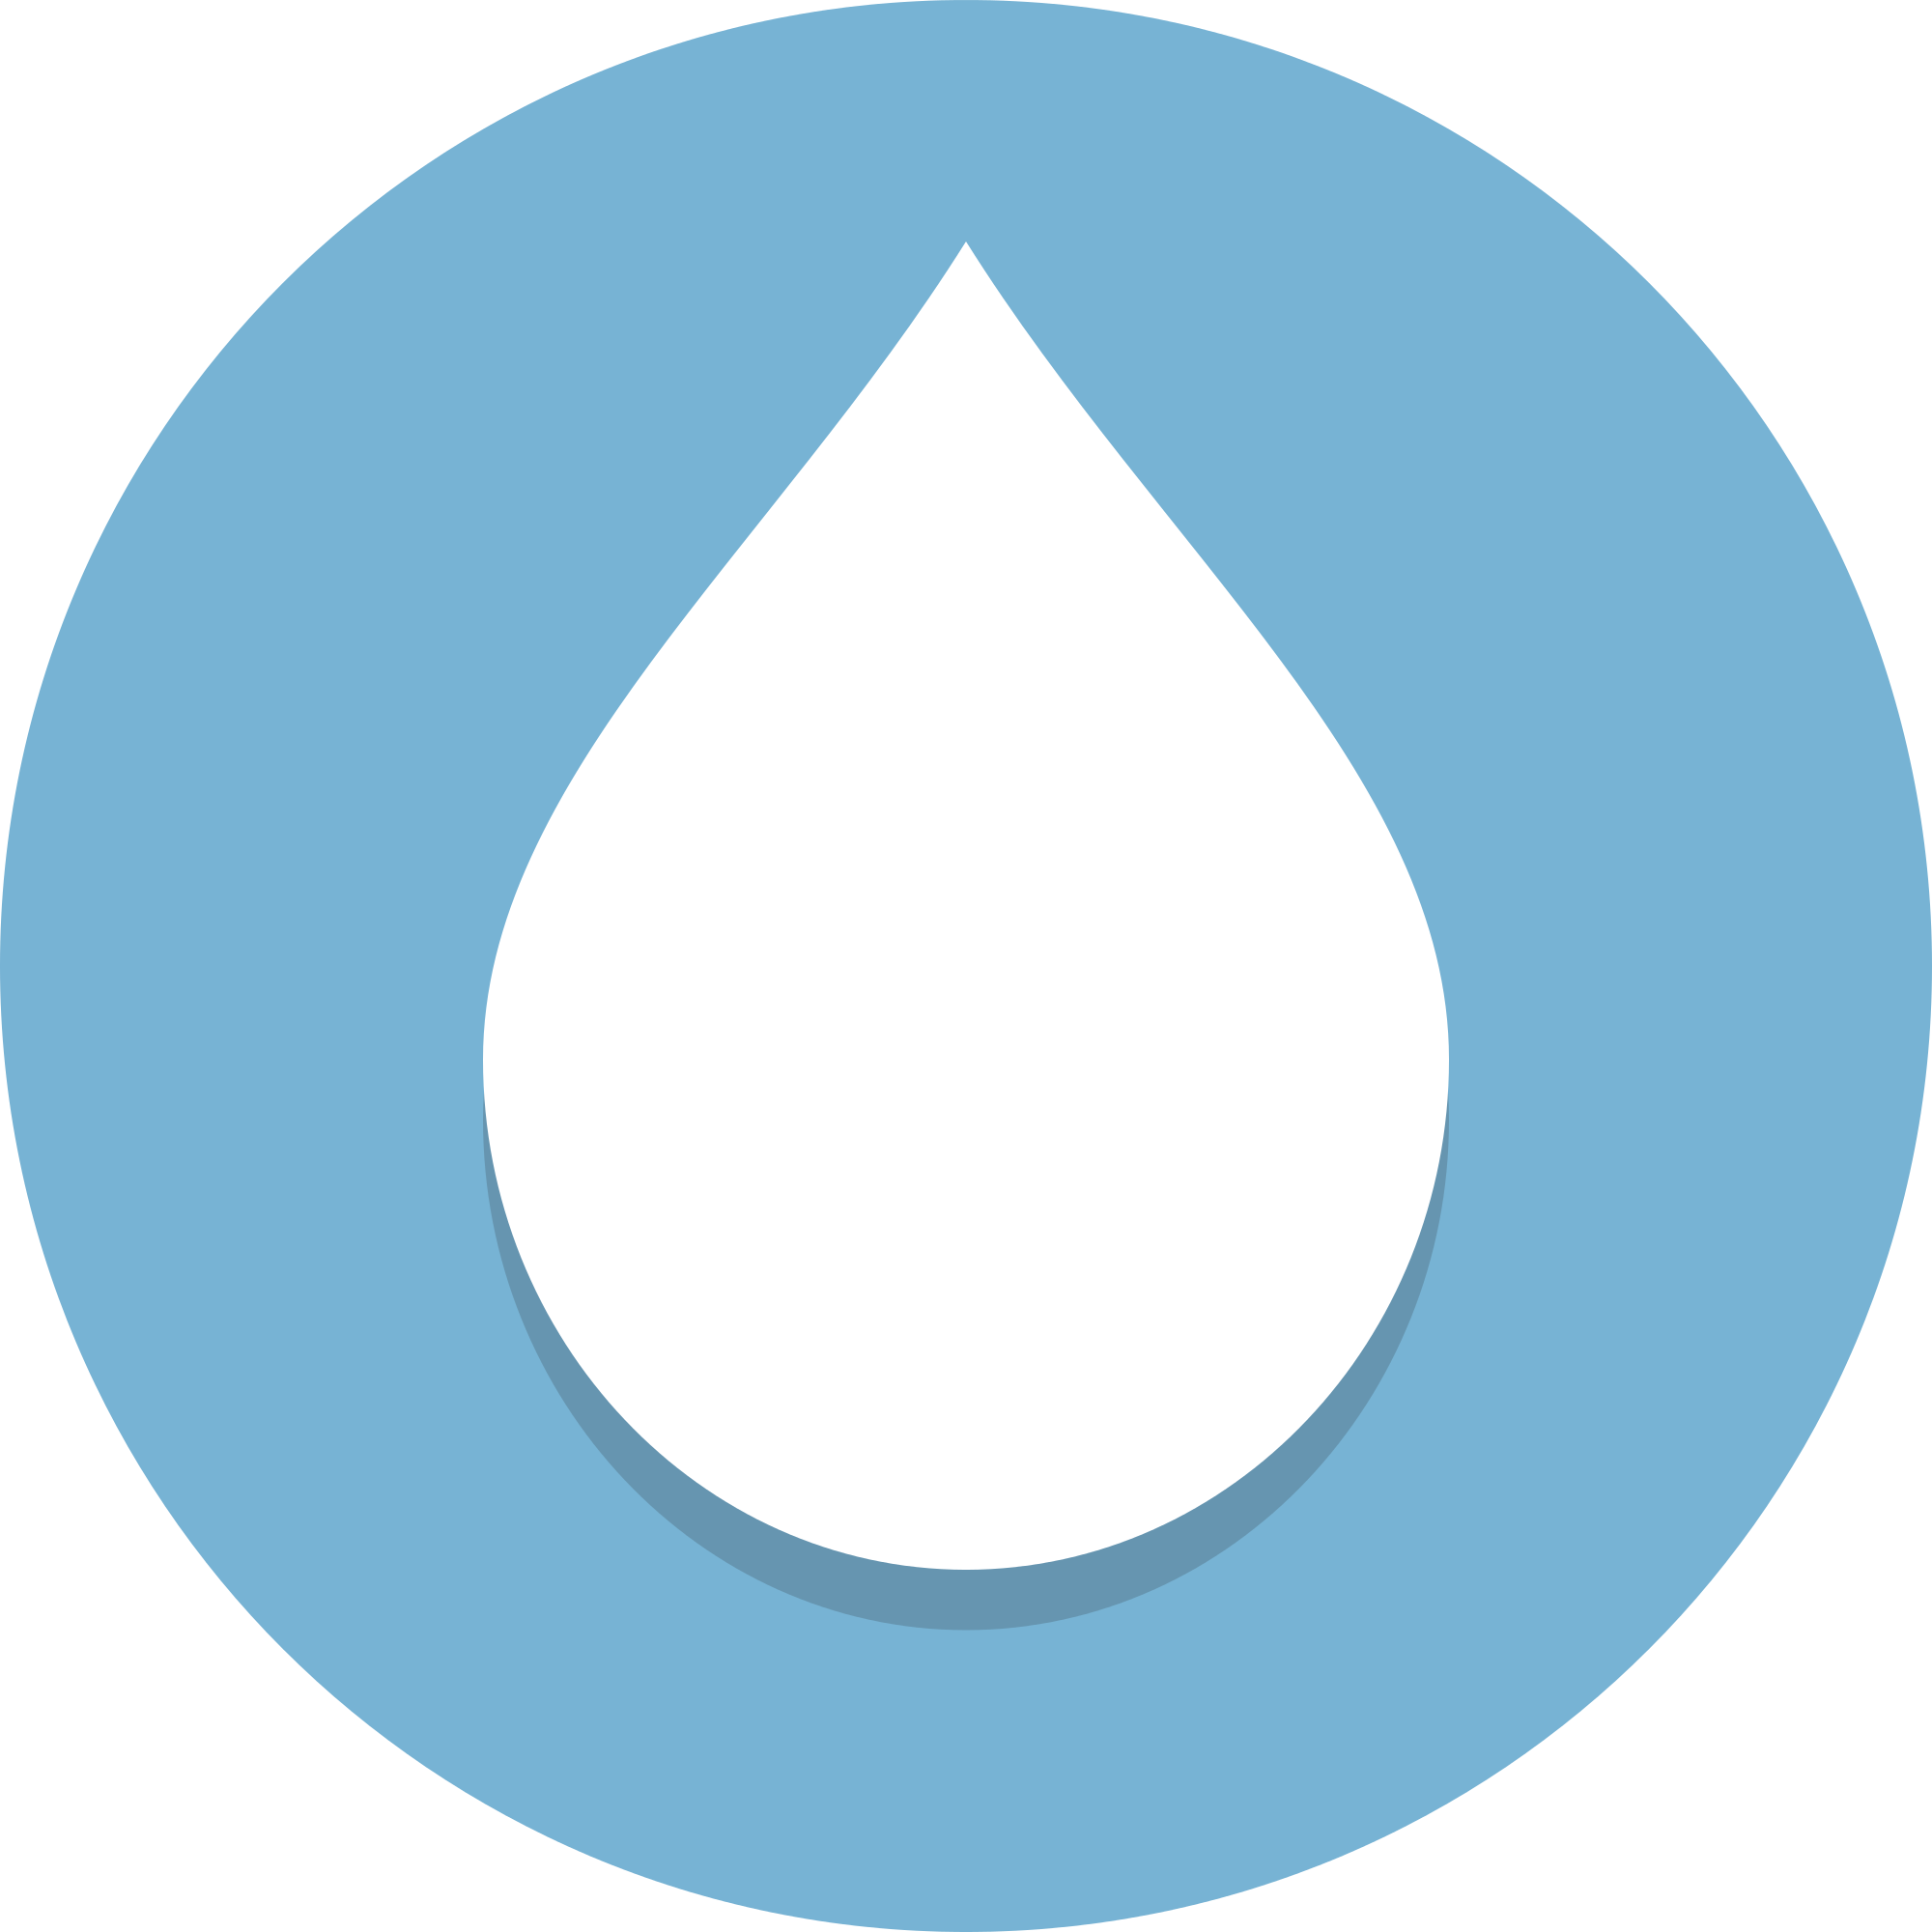 Water icon png. File circle icons svg